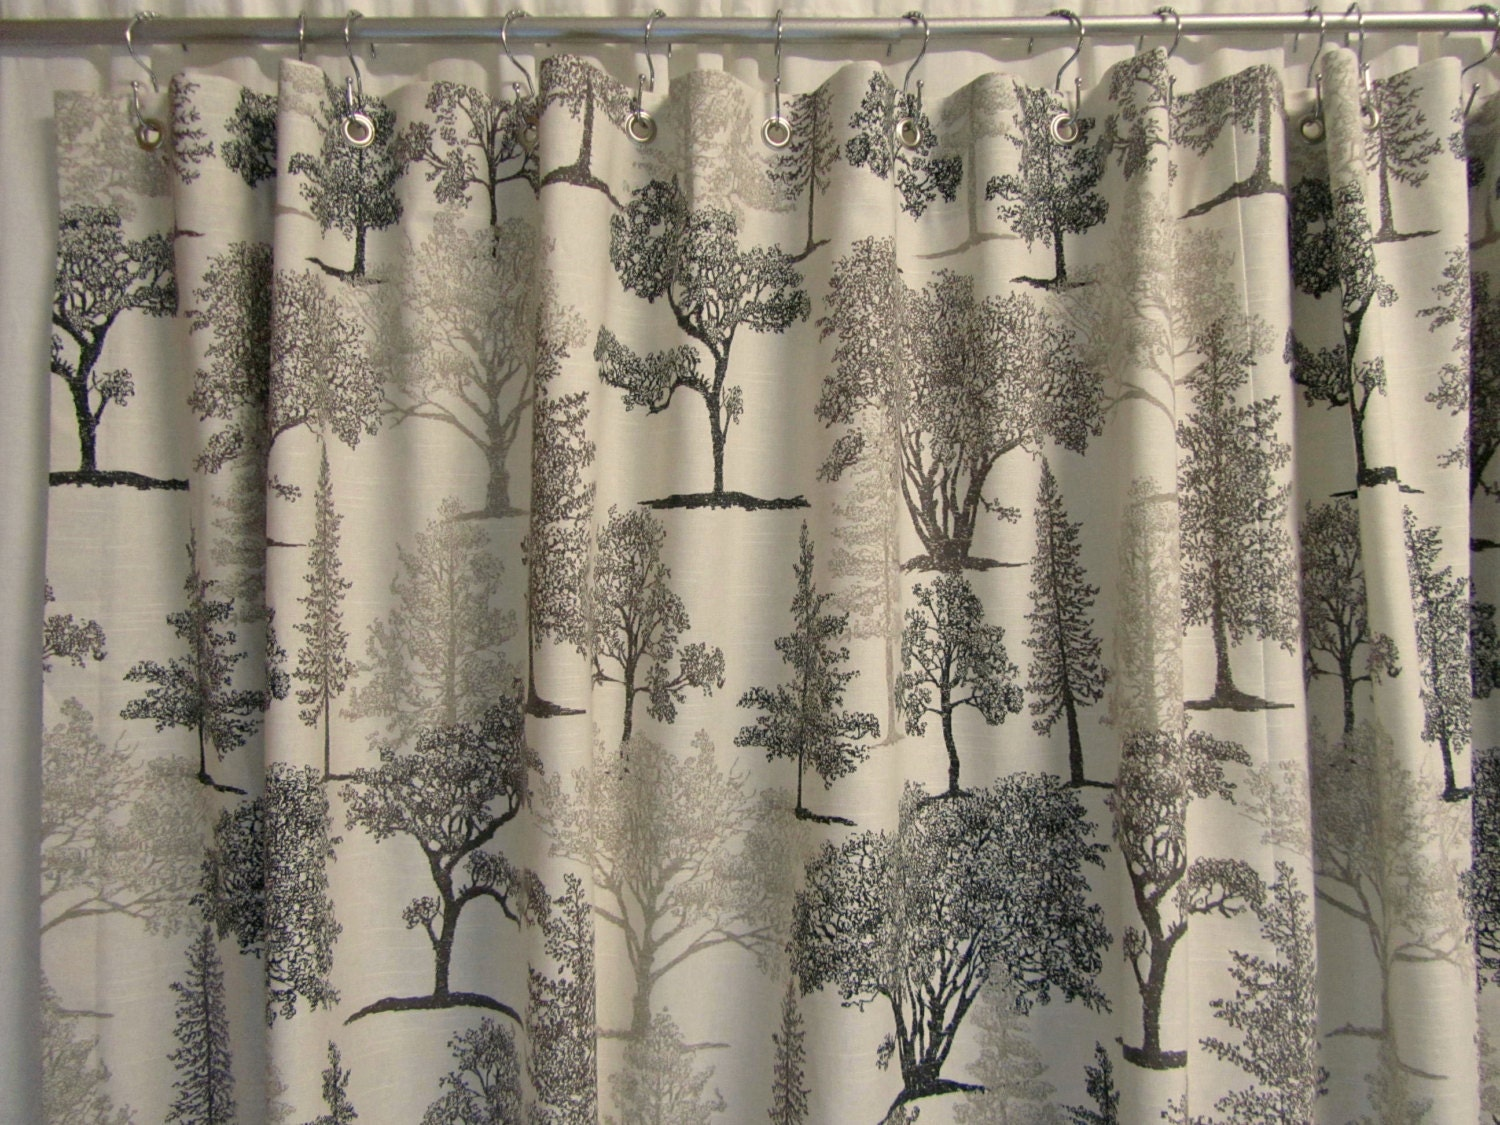 Shower Curtains: Rustic Shower Curtain Graphite Gray Shower Curtain Nature